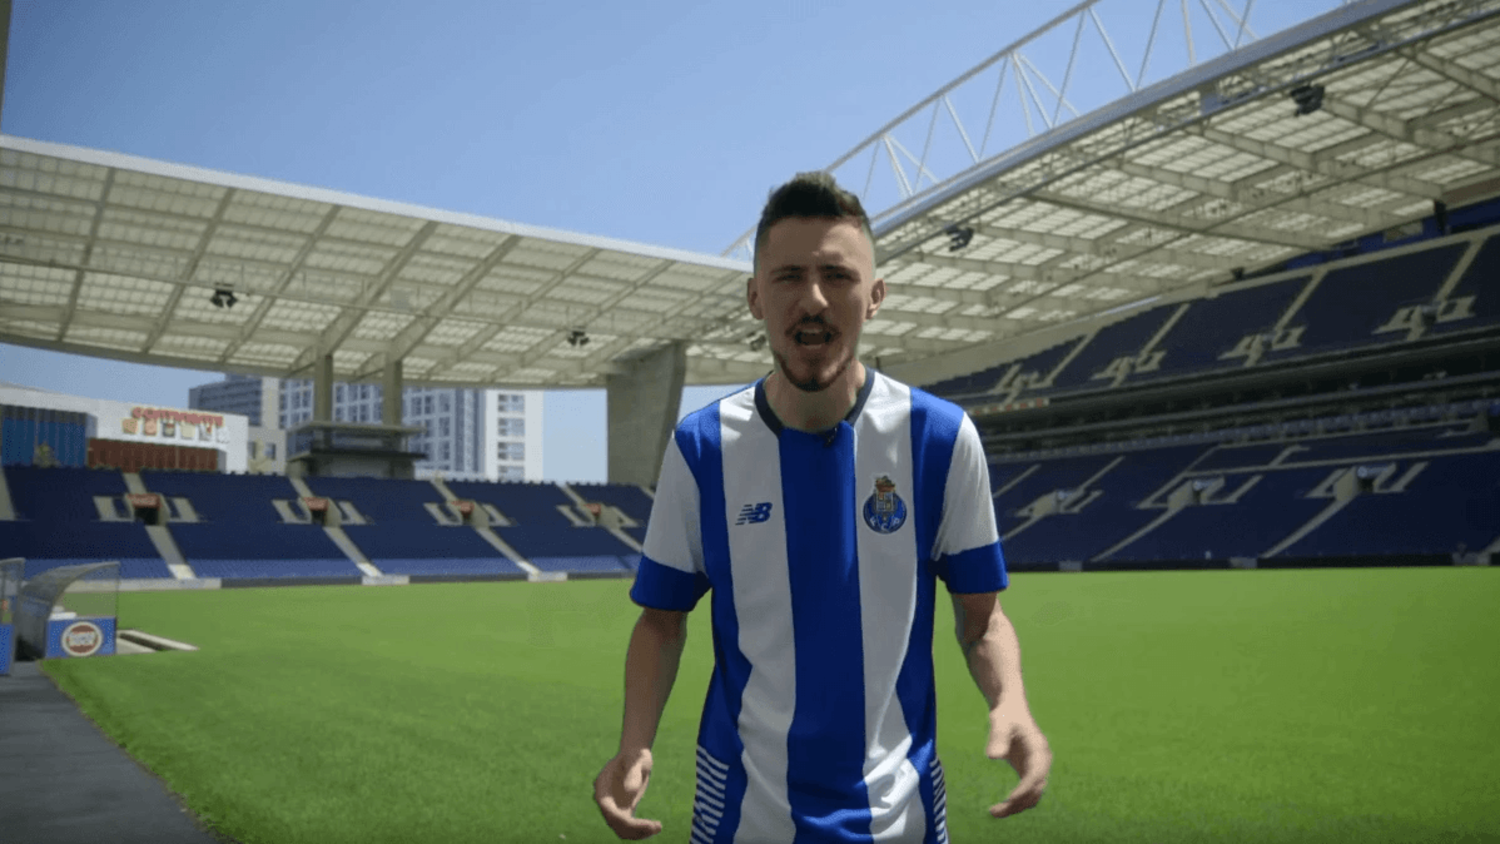 FC Porto's Kit Launch Was Possibly The Craziest of All-Time & David Vujanic Loved It